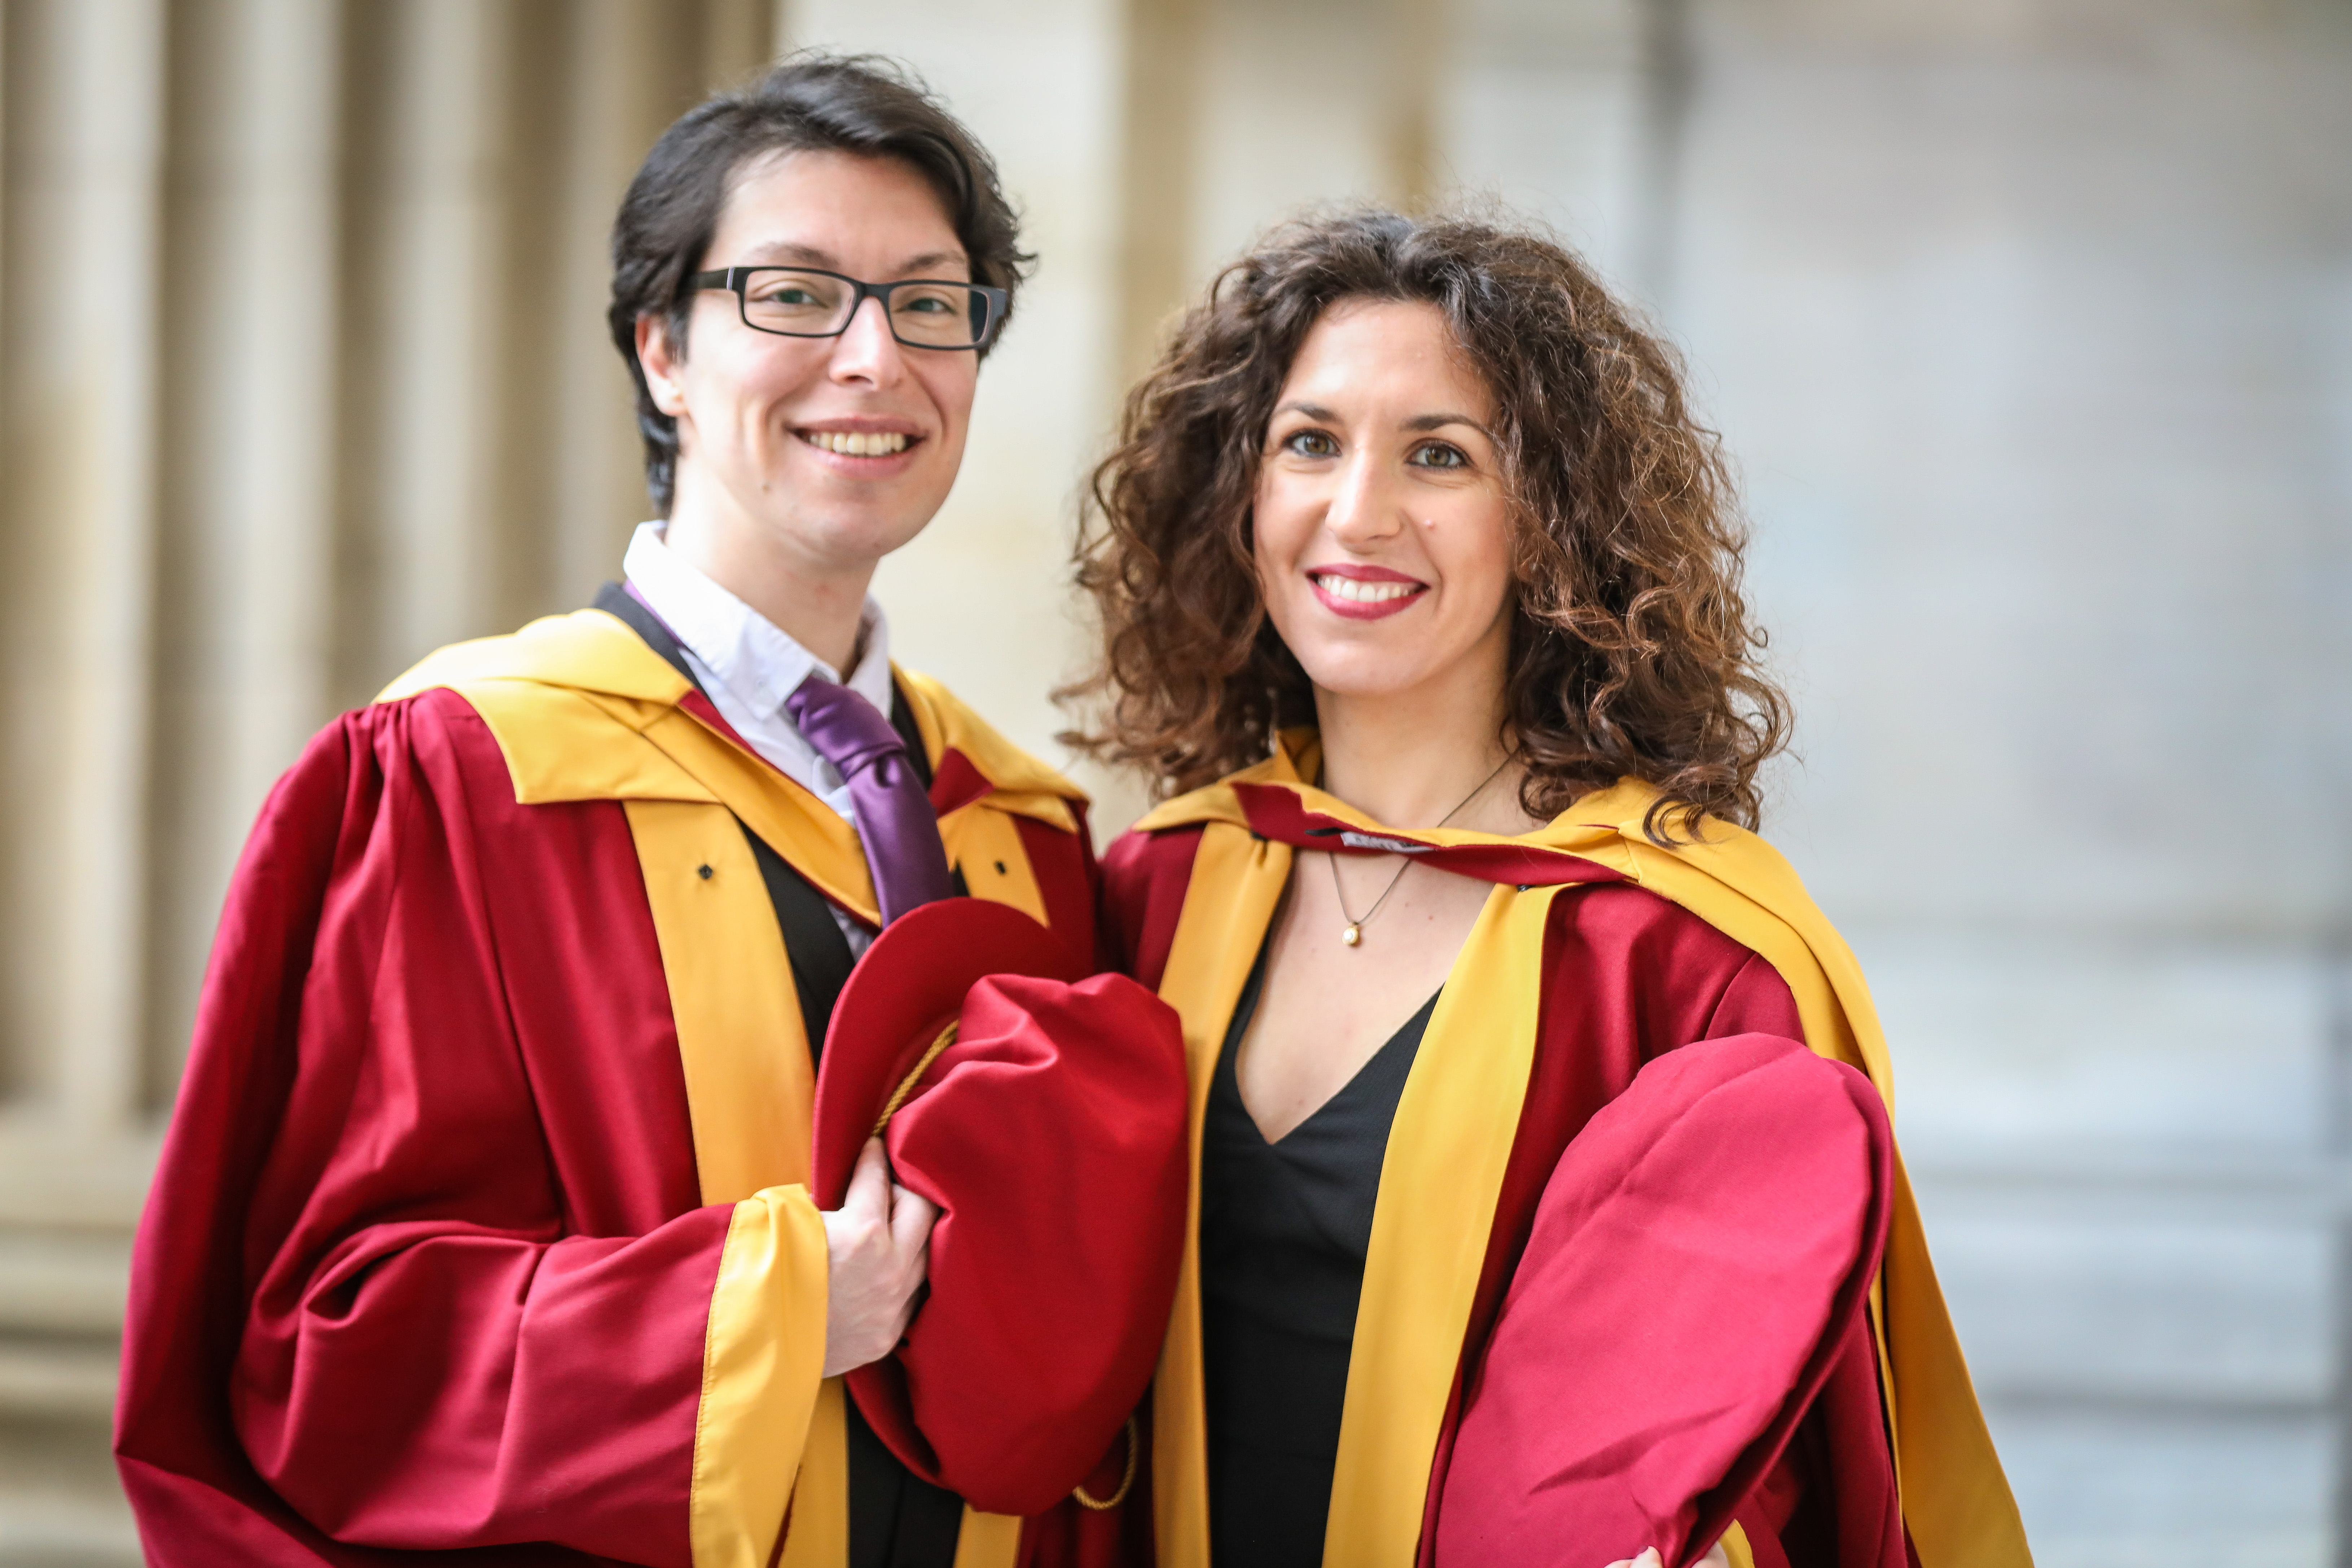 PHD graduates, Orion Mavridou and Konstantina Tsikrika outside the Caird Hall ahead of Abertay University's graduation ceremony.